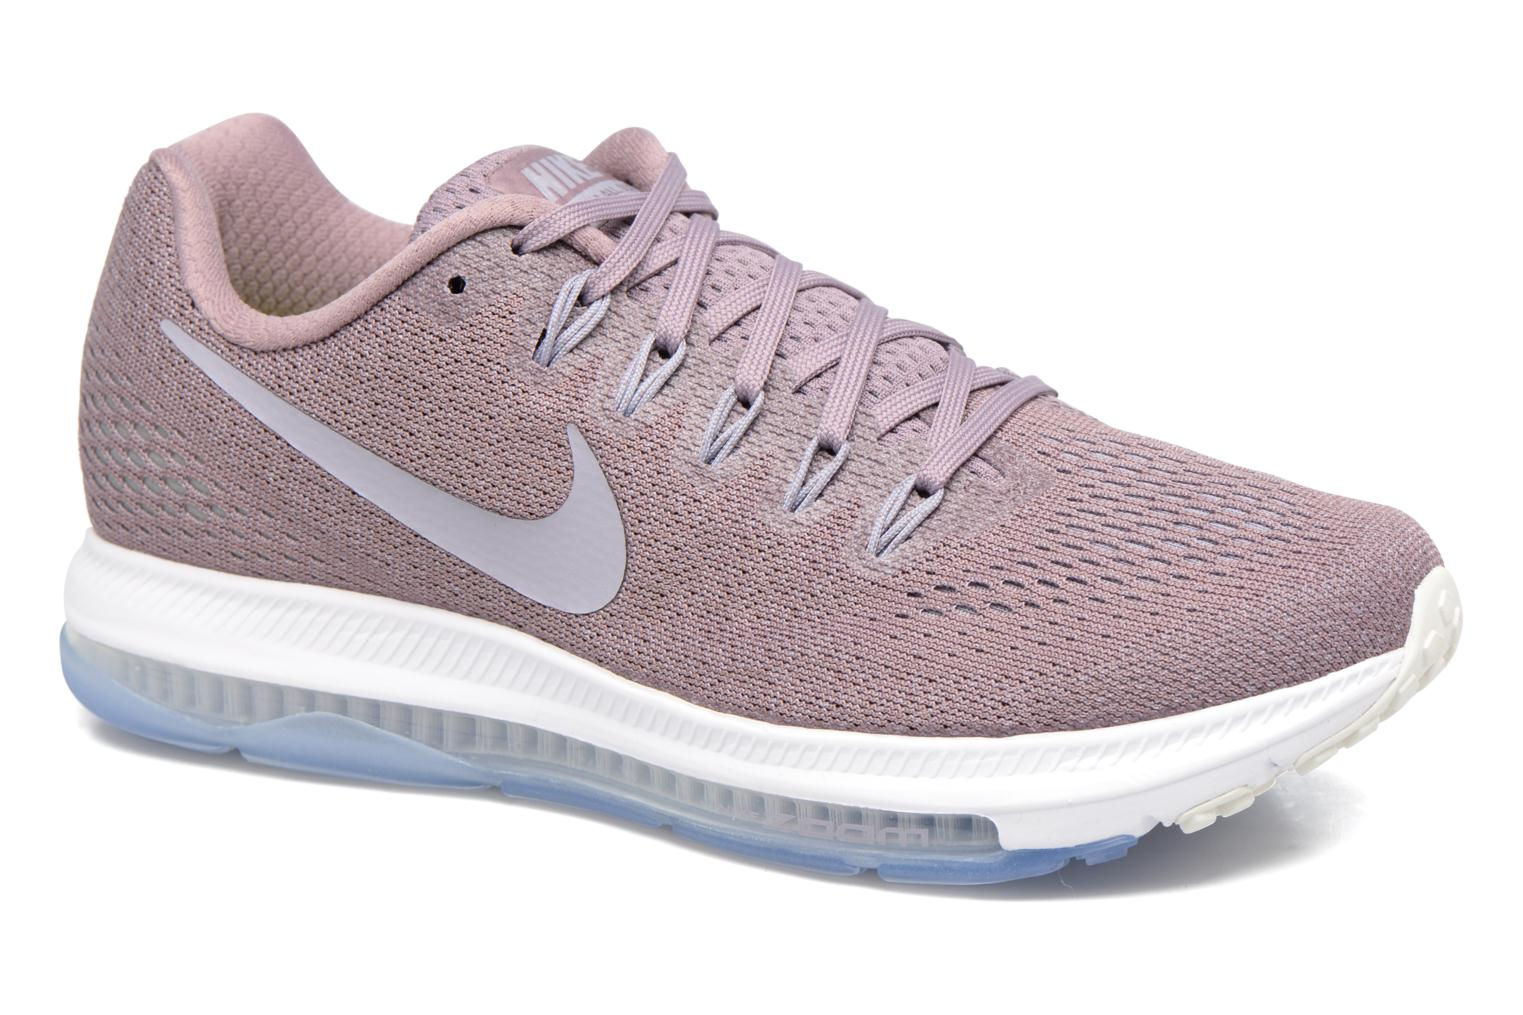 Zapatillas de deporte Nike Wmns Nike Zoom All Out Low Violeta      vista de detalle / par